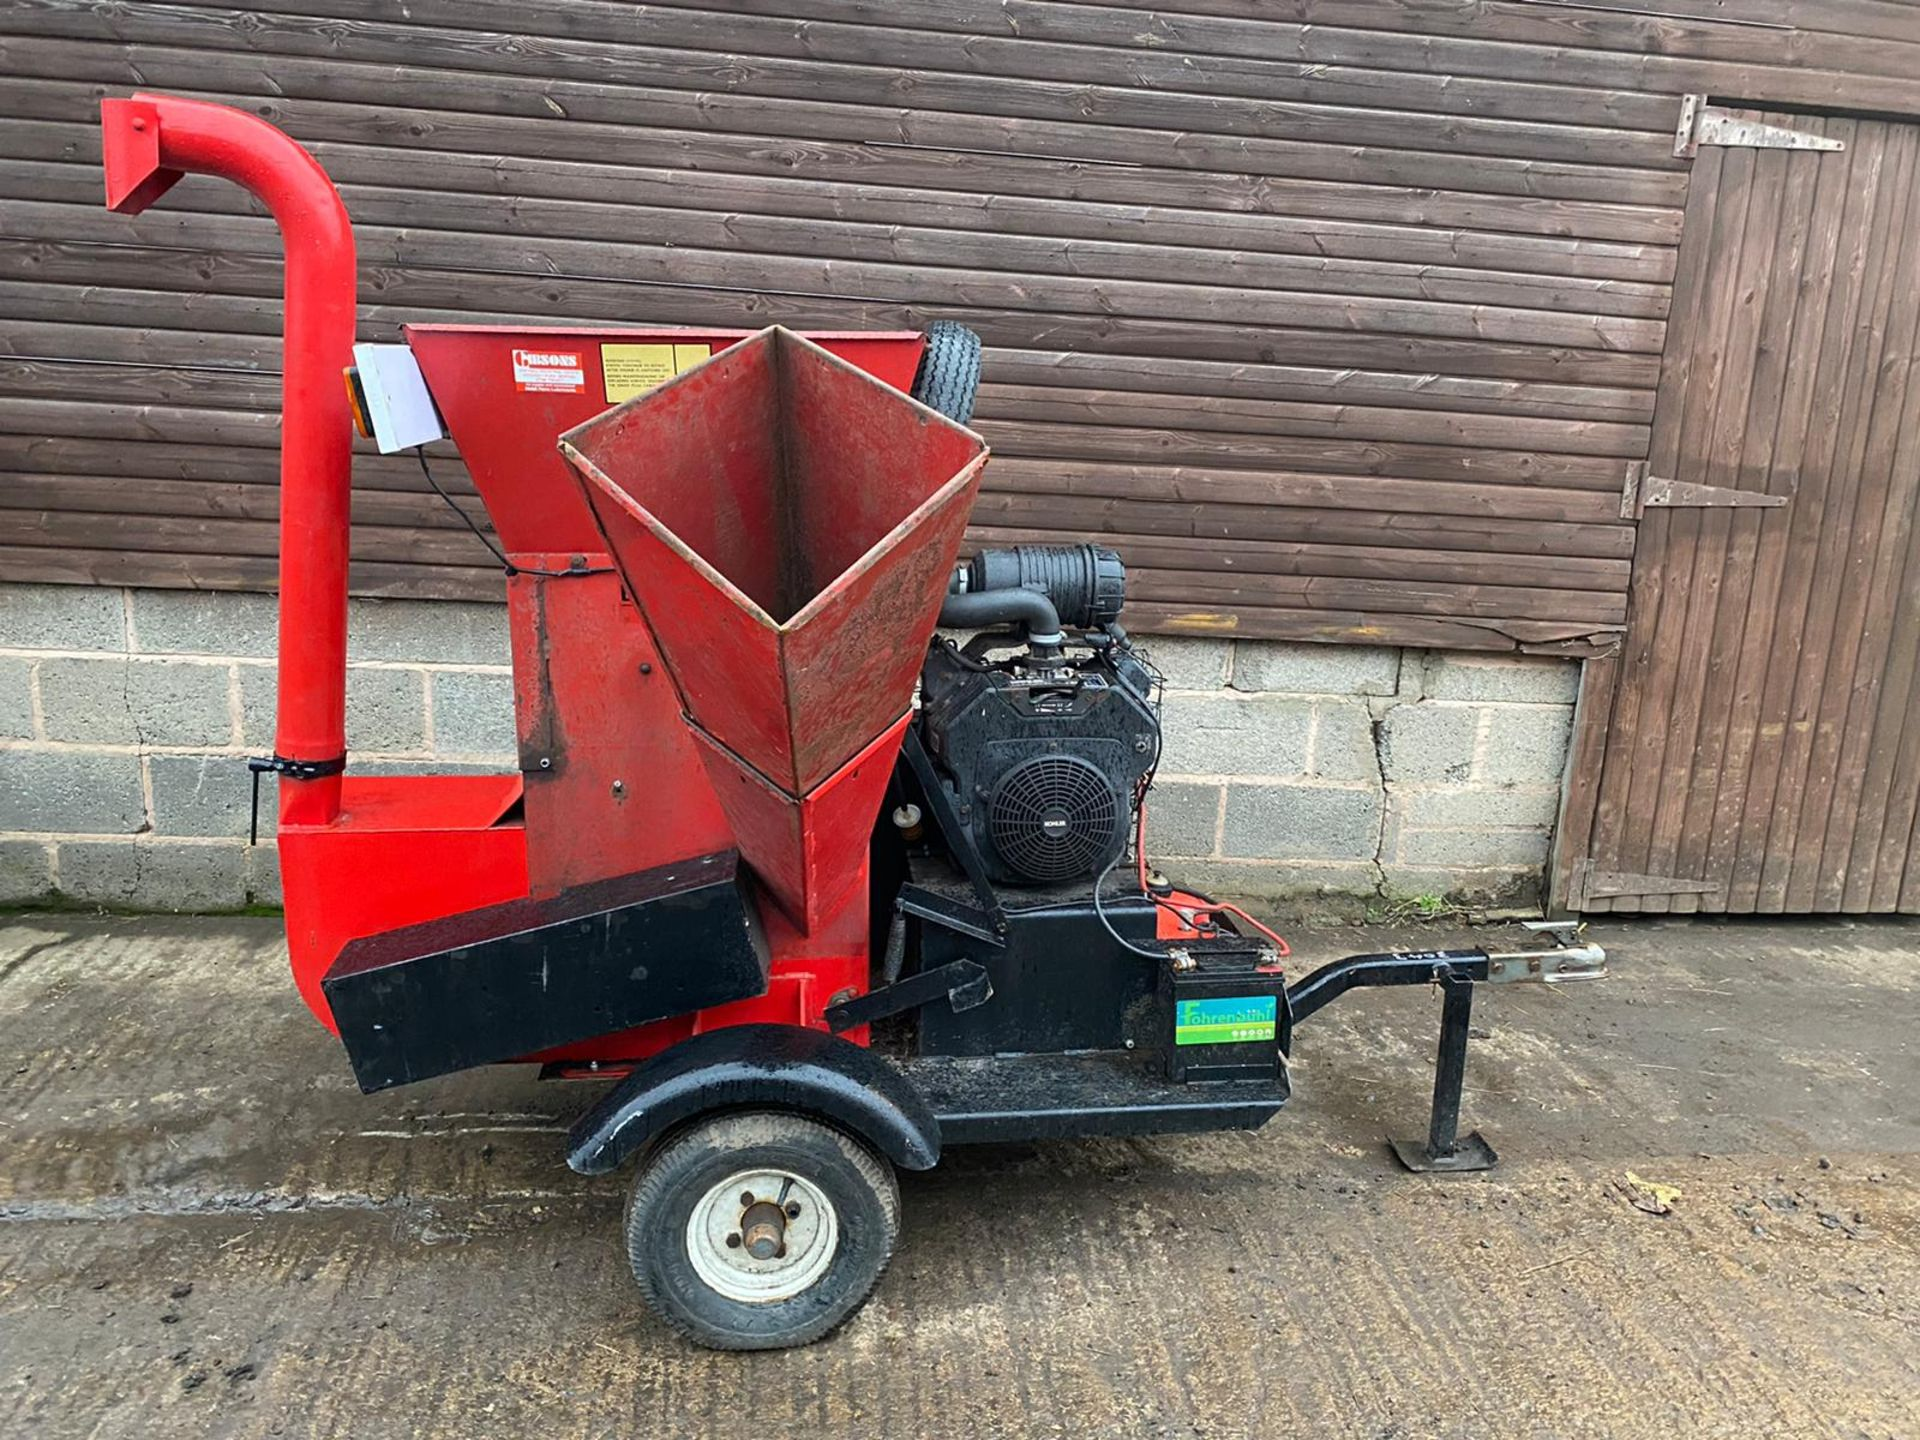 BEARCAT 71020 TOWABLE WOOD CHIPPER, KEY START 27HP PETROL ENGINE, ROAD TOWABLE *PLUS VAT*